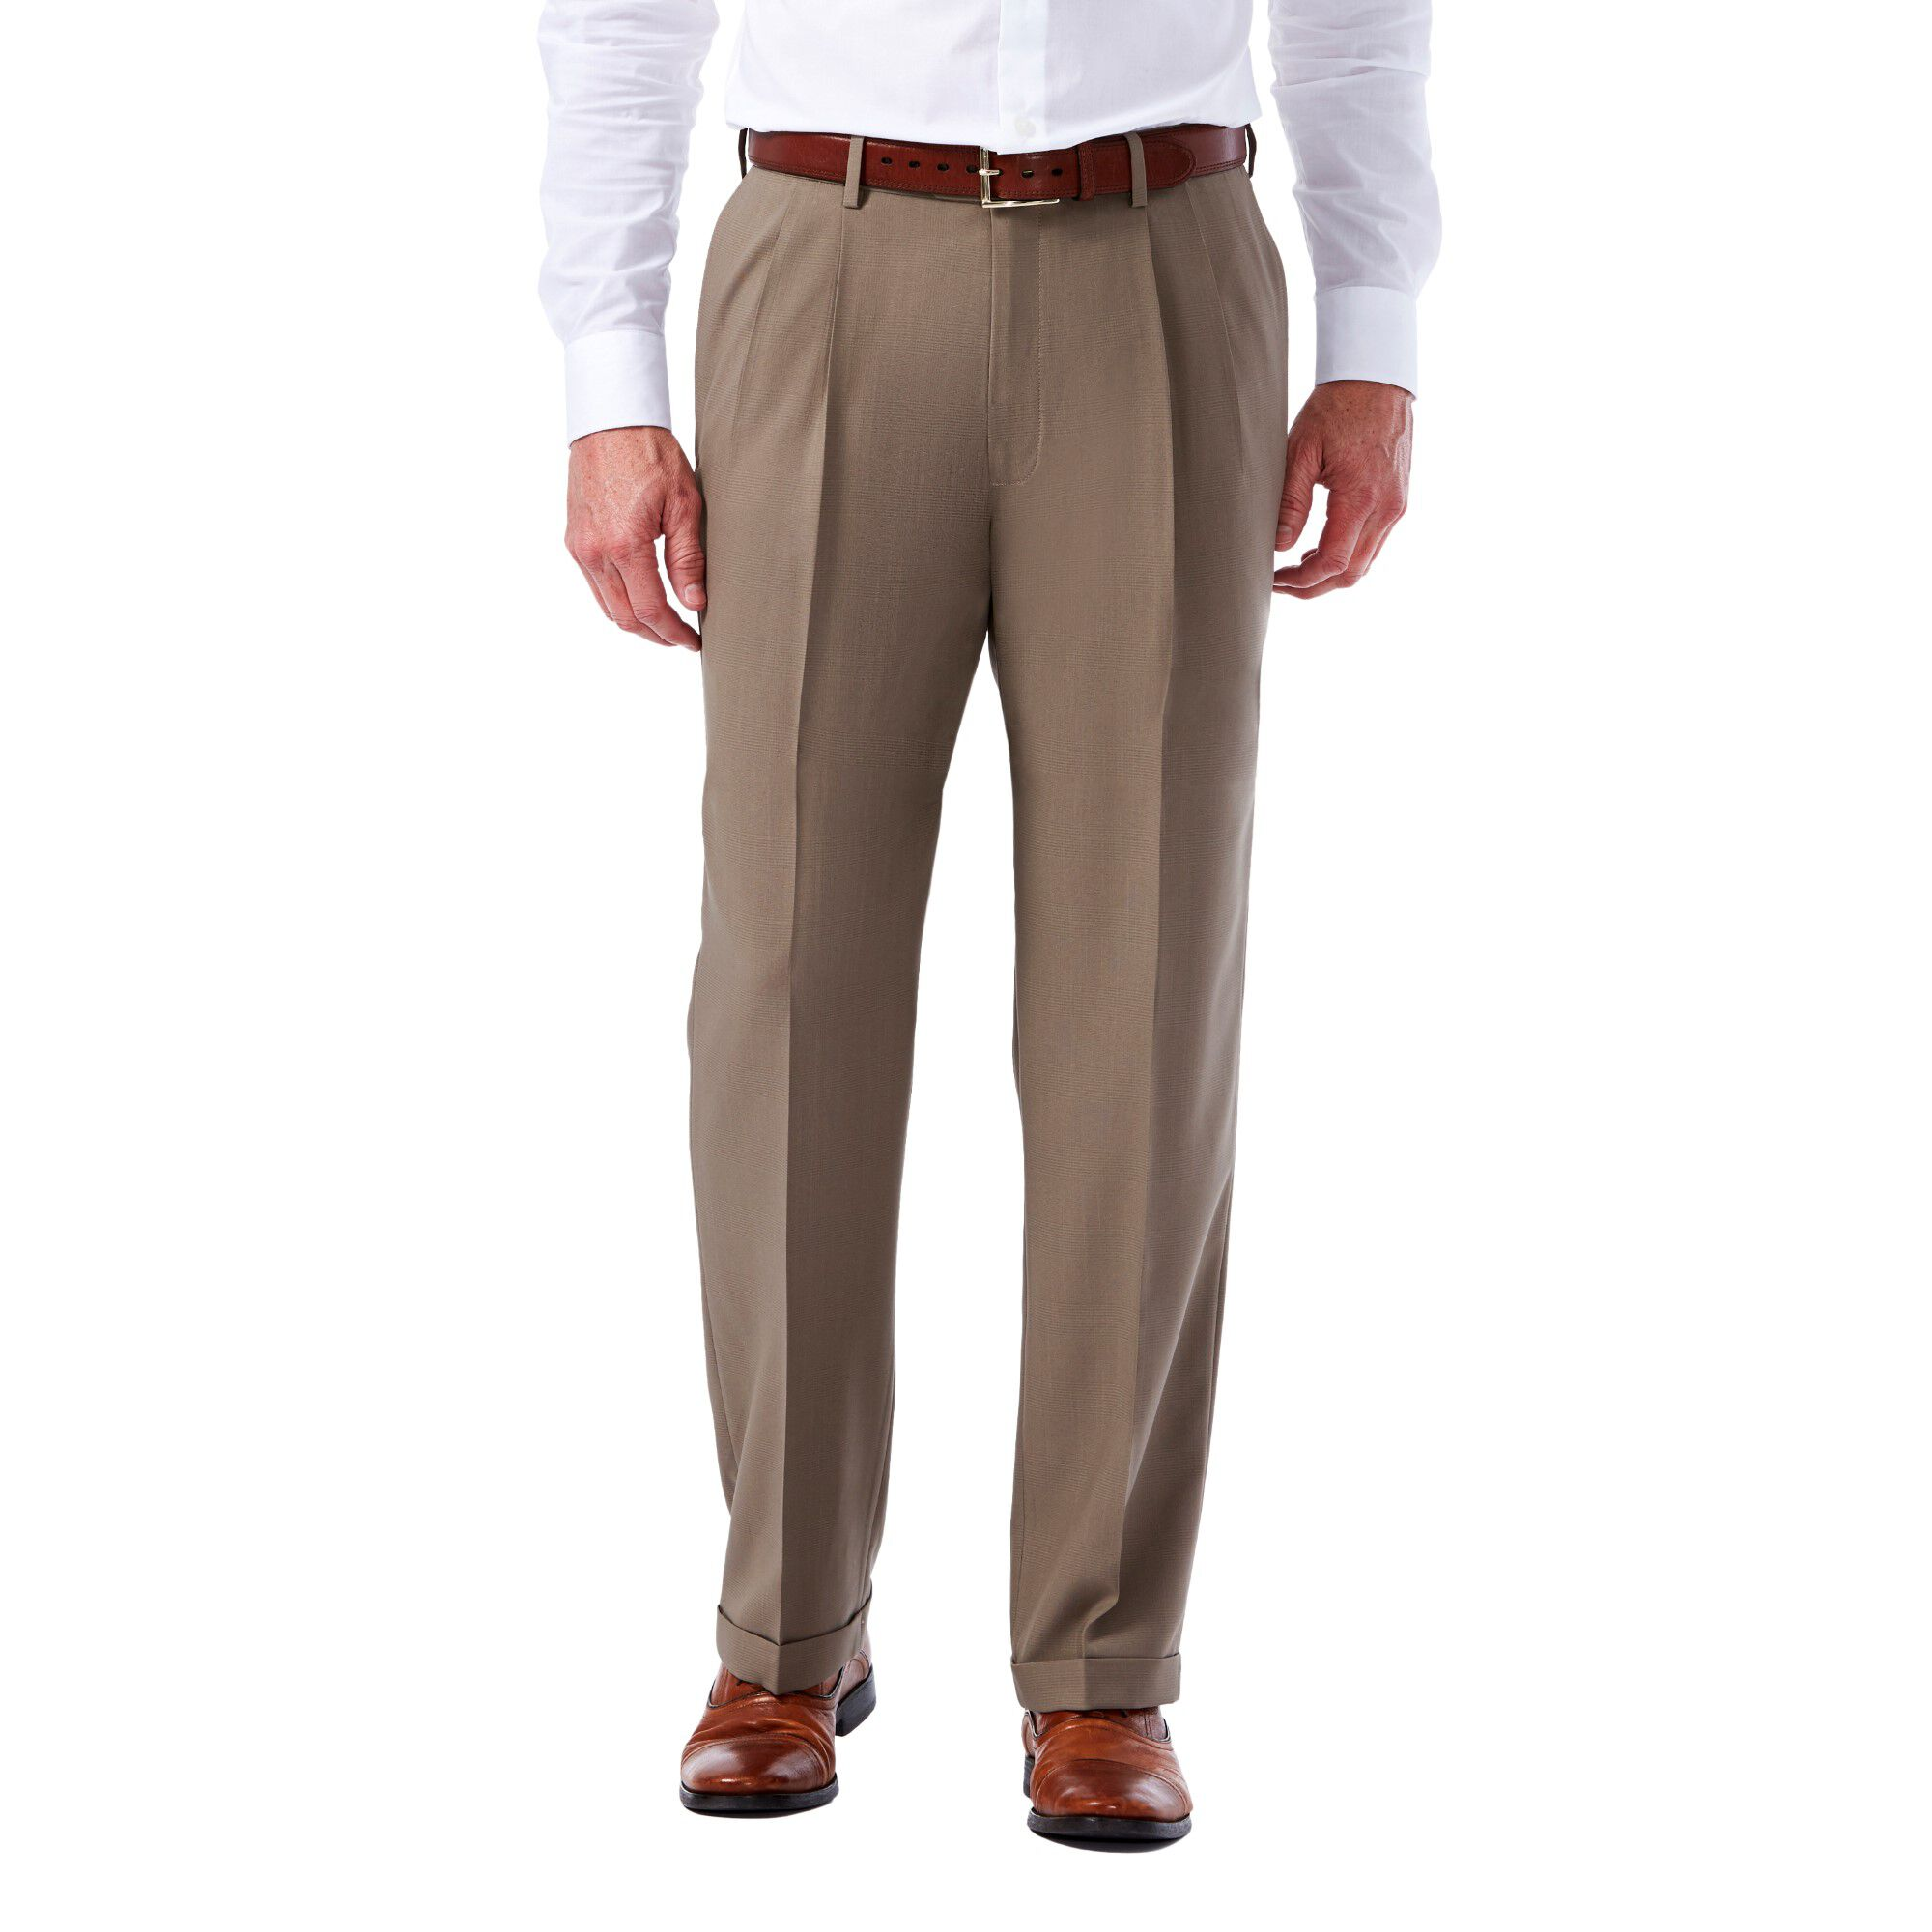 Men's Dress Pants - Slacks and Dress Pants at Haggar